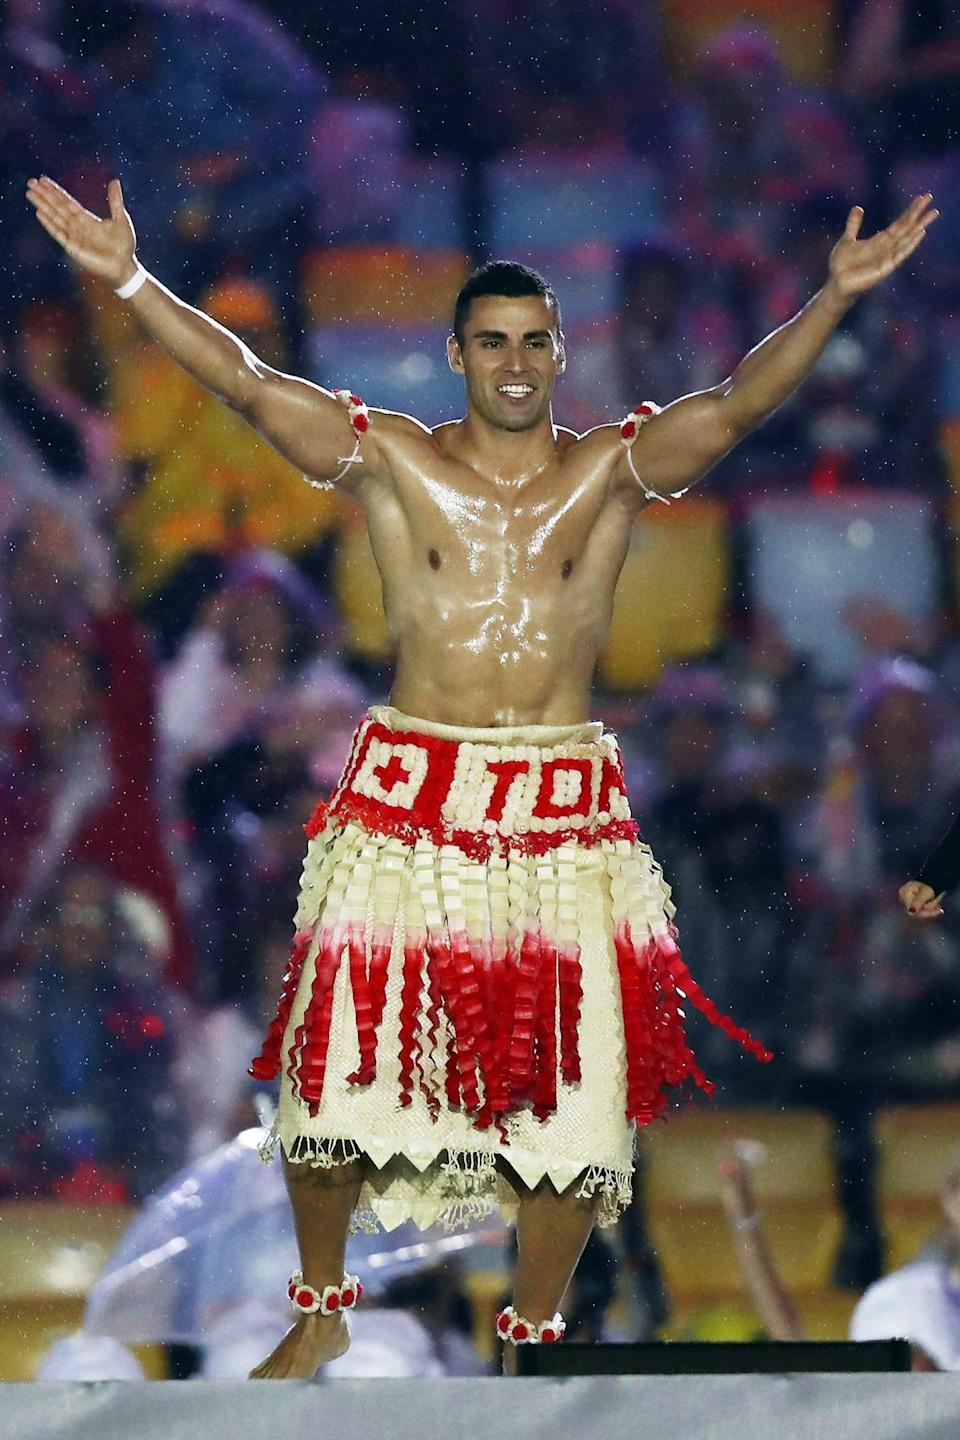 """<p>And while he is certainly a sight to behold, he's not just there to look pretty and carry a flag (though those things are a plus): Taufatofua was actually there to compete. </p> <p>And he wasn't <em>trying </em>to cause an Internet thirst trap, either. He told <a href=""""https://www.theguardian.com/sport/2019/jan/02/the-incredible-story-of-pita-taufatofua-tongas-shirtless-olympic-flag-bearer"""" rel=""""nofollow noopener"""" target=""""_blank"""" data-ylk=""""slk:The Guardian"""" class=""""link rapid-noclick-resp""""><em>The Guardian</em></a> in 2019, """"I was representing 1,000 years of history. We didn't have suits and ties when we traversed the Pacific Ocean.""""</p>"""